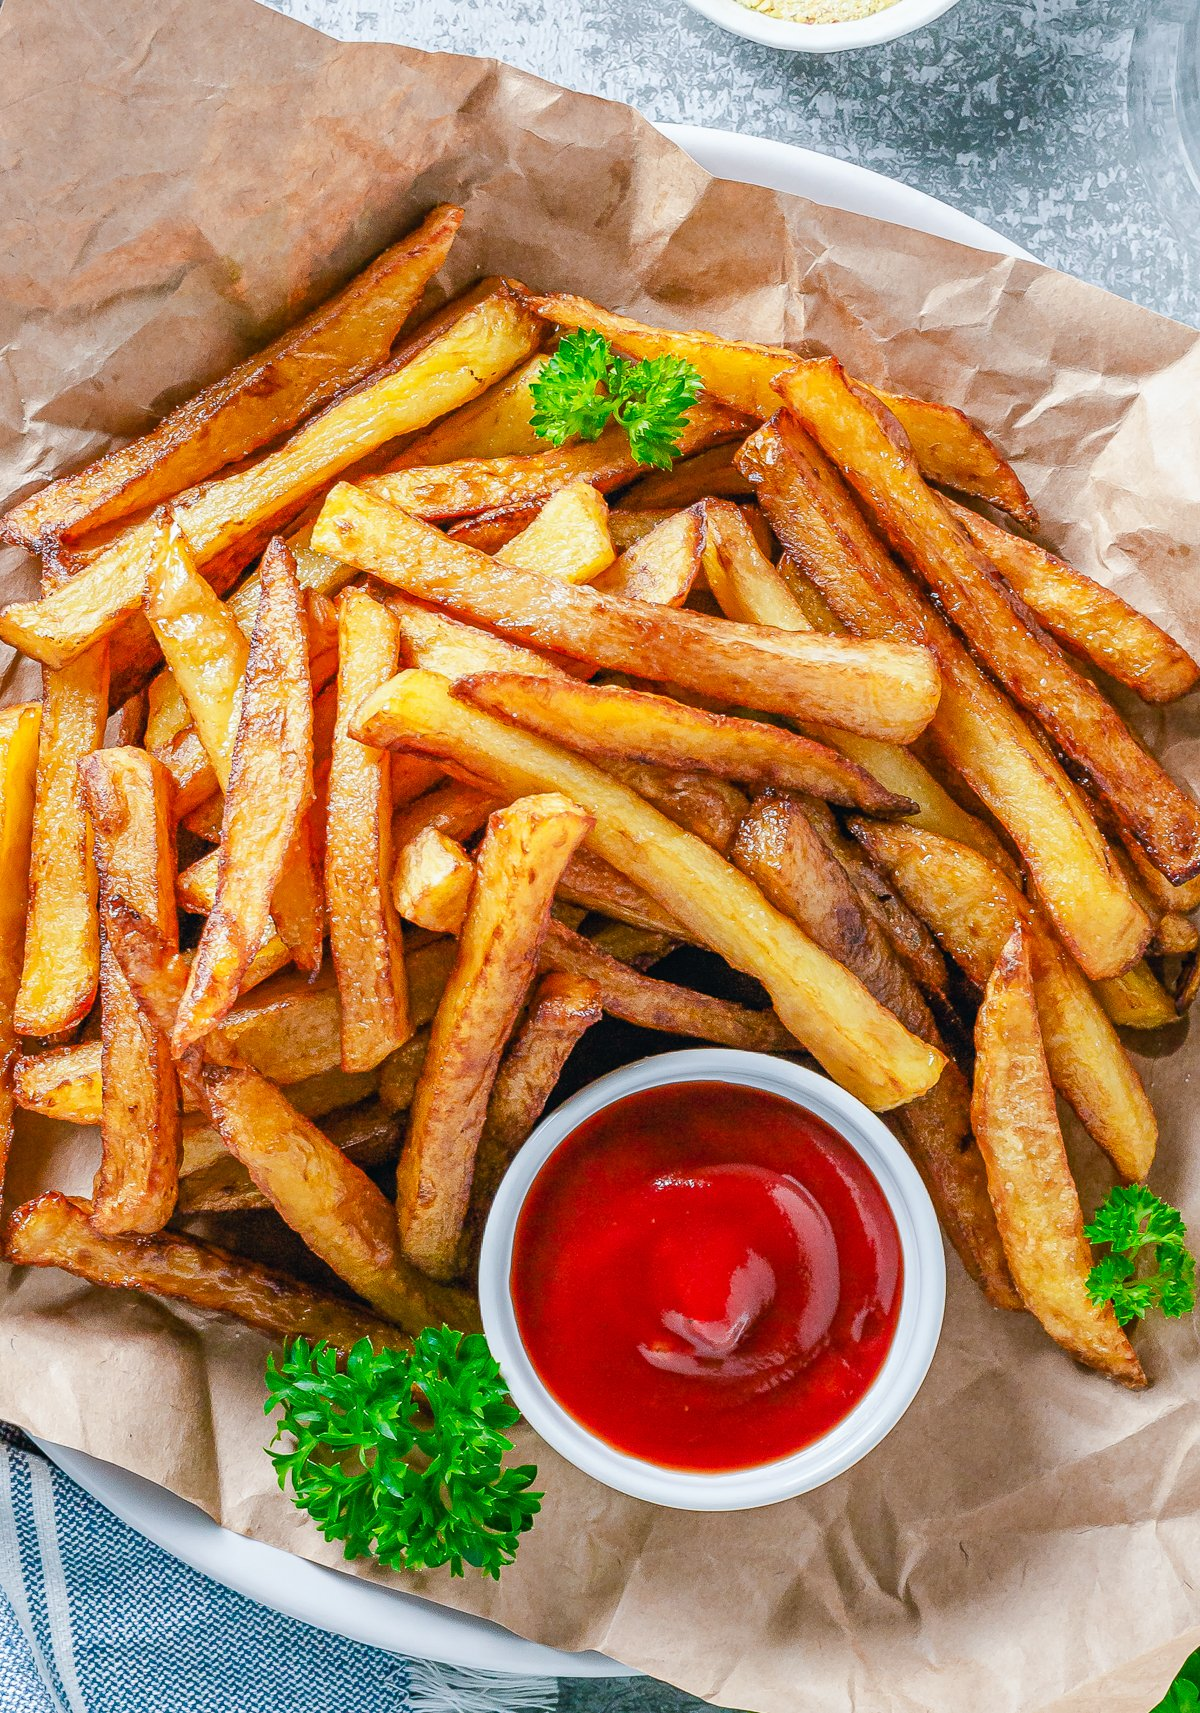 Overhead photo of French Fries on parchment paper with ketchup and parsley.